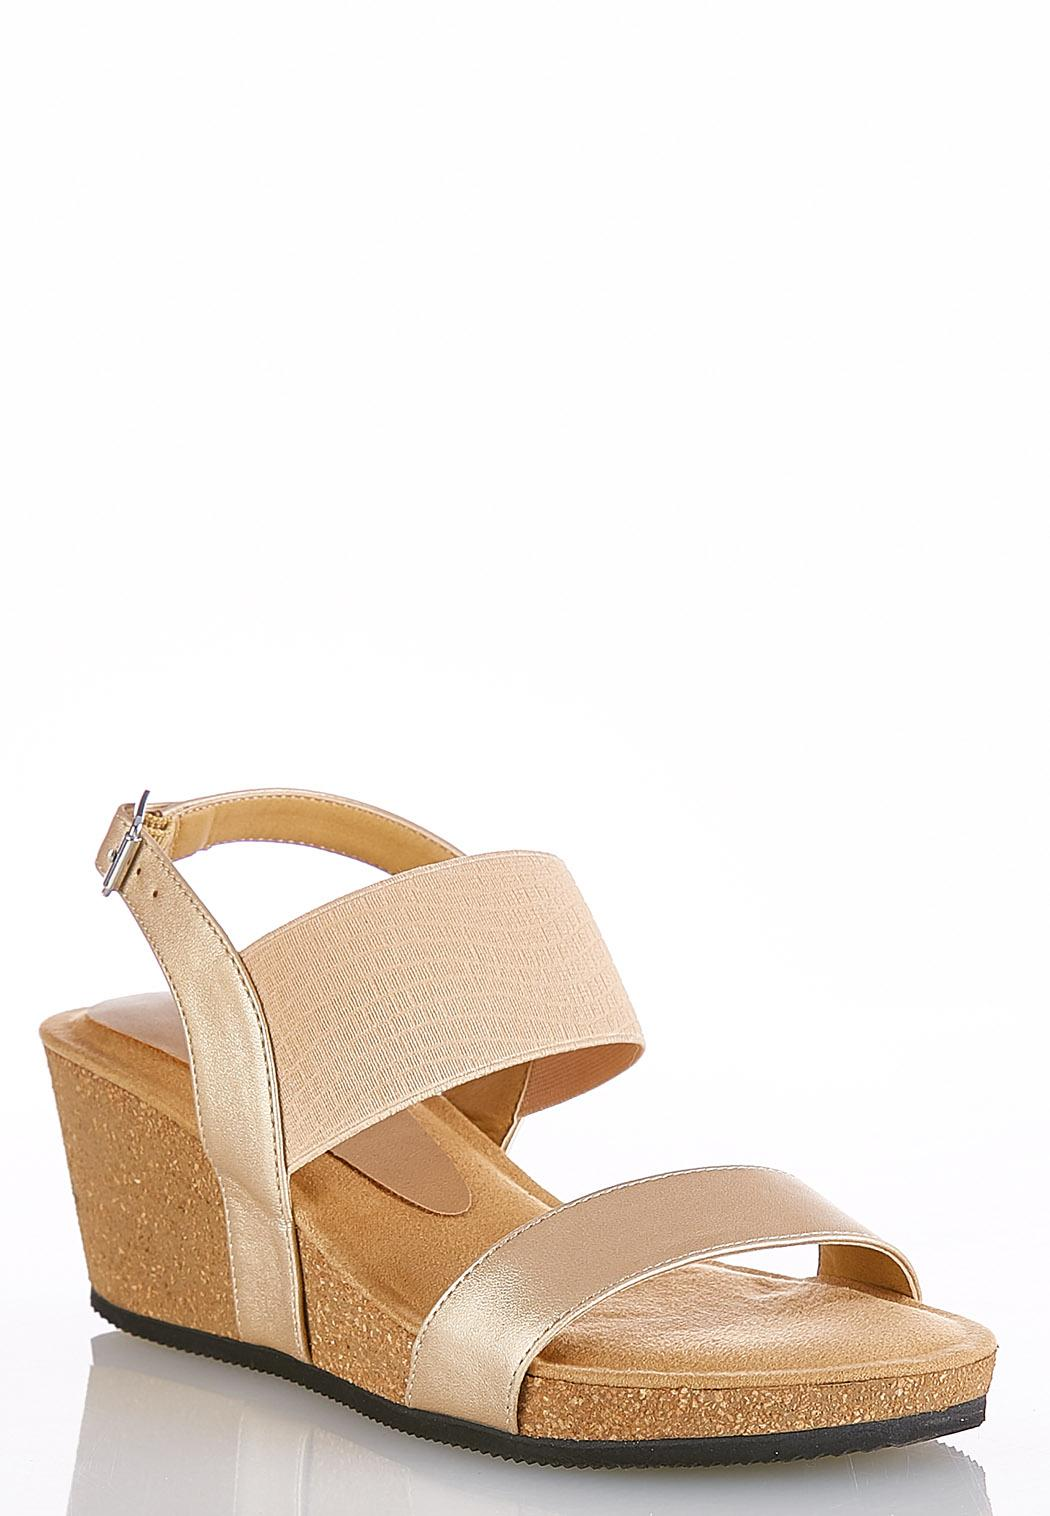 0f3600cb8 Stretch Band Cork Wedges Wedges Cato Fashions